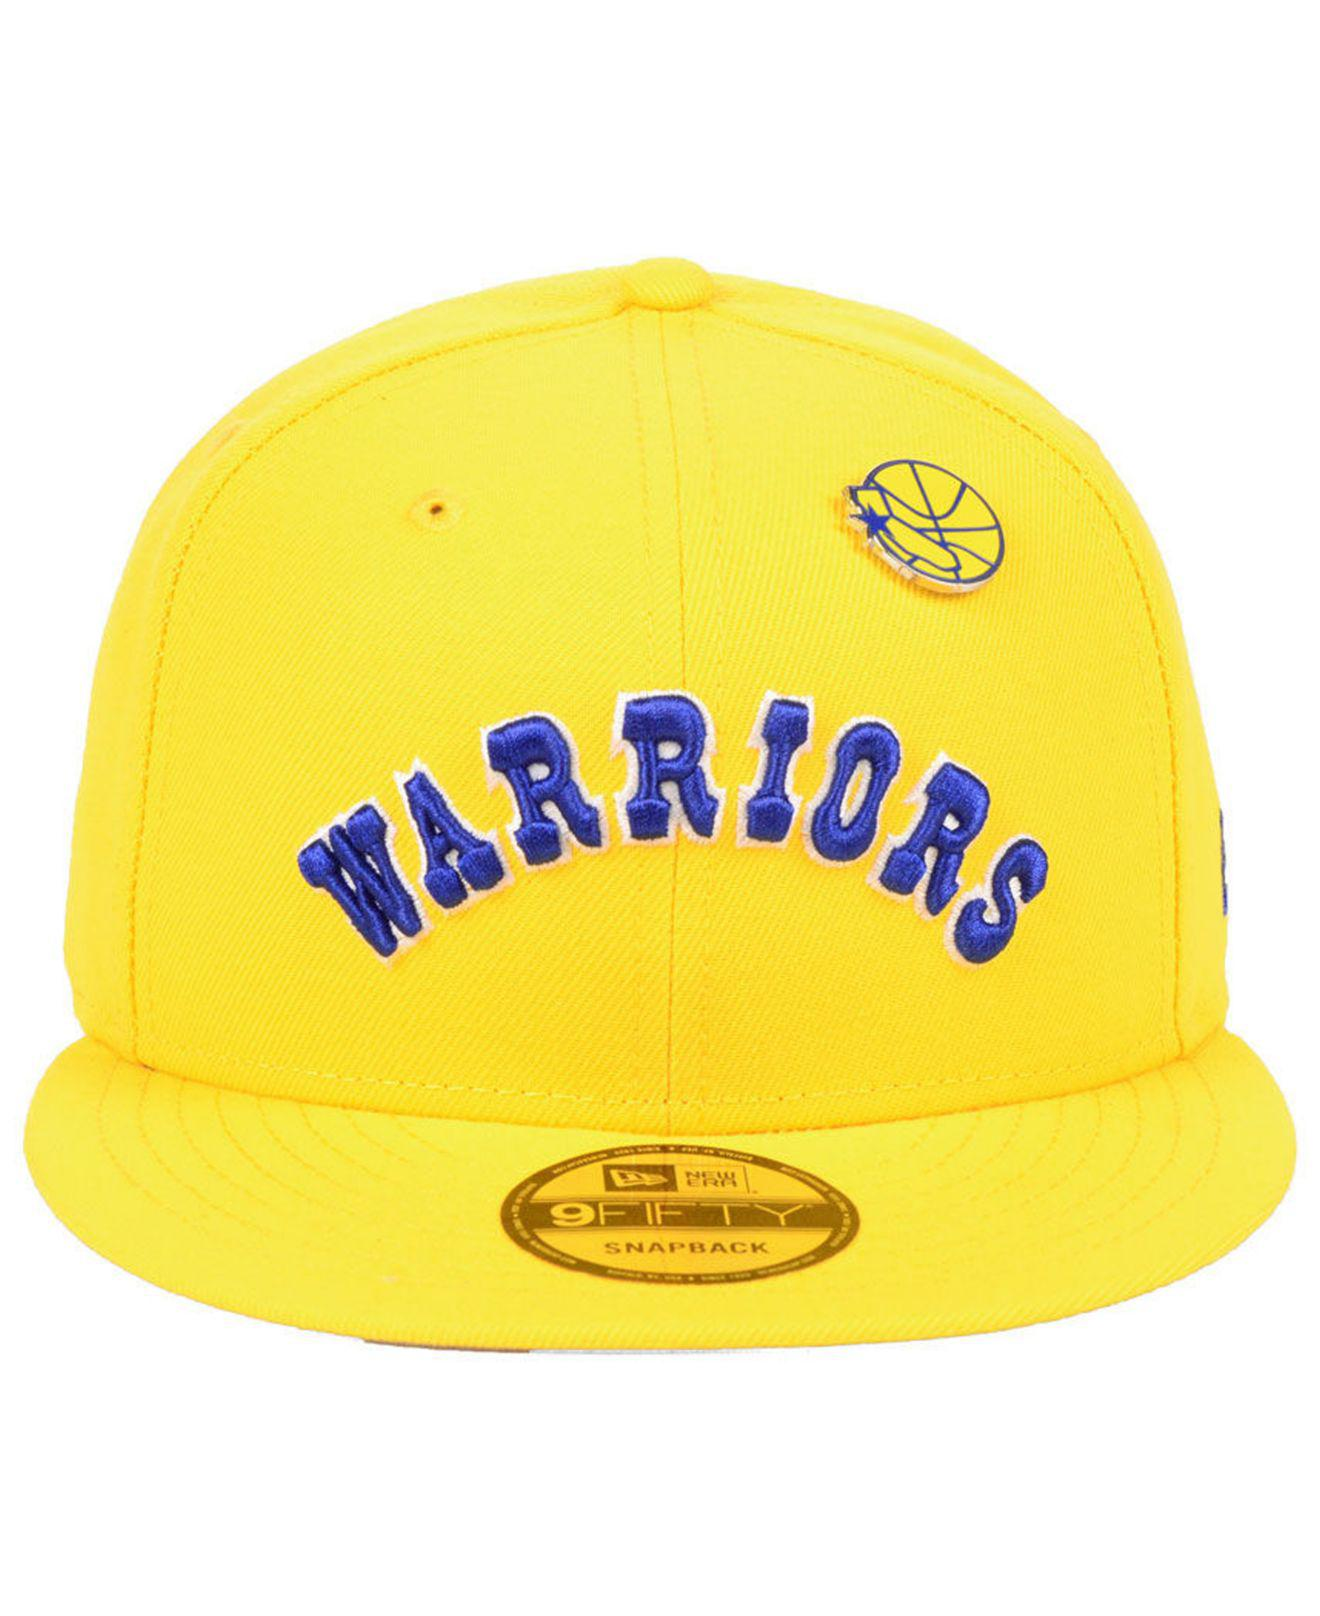 e0e5f4a618dde ... czech lyst ktz golden state warriors hardwood classic nights pin 9fifty  snapback cap in yellow for